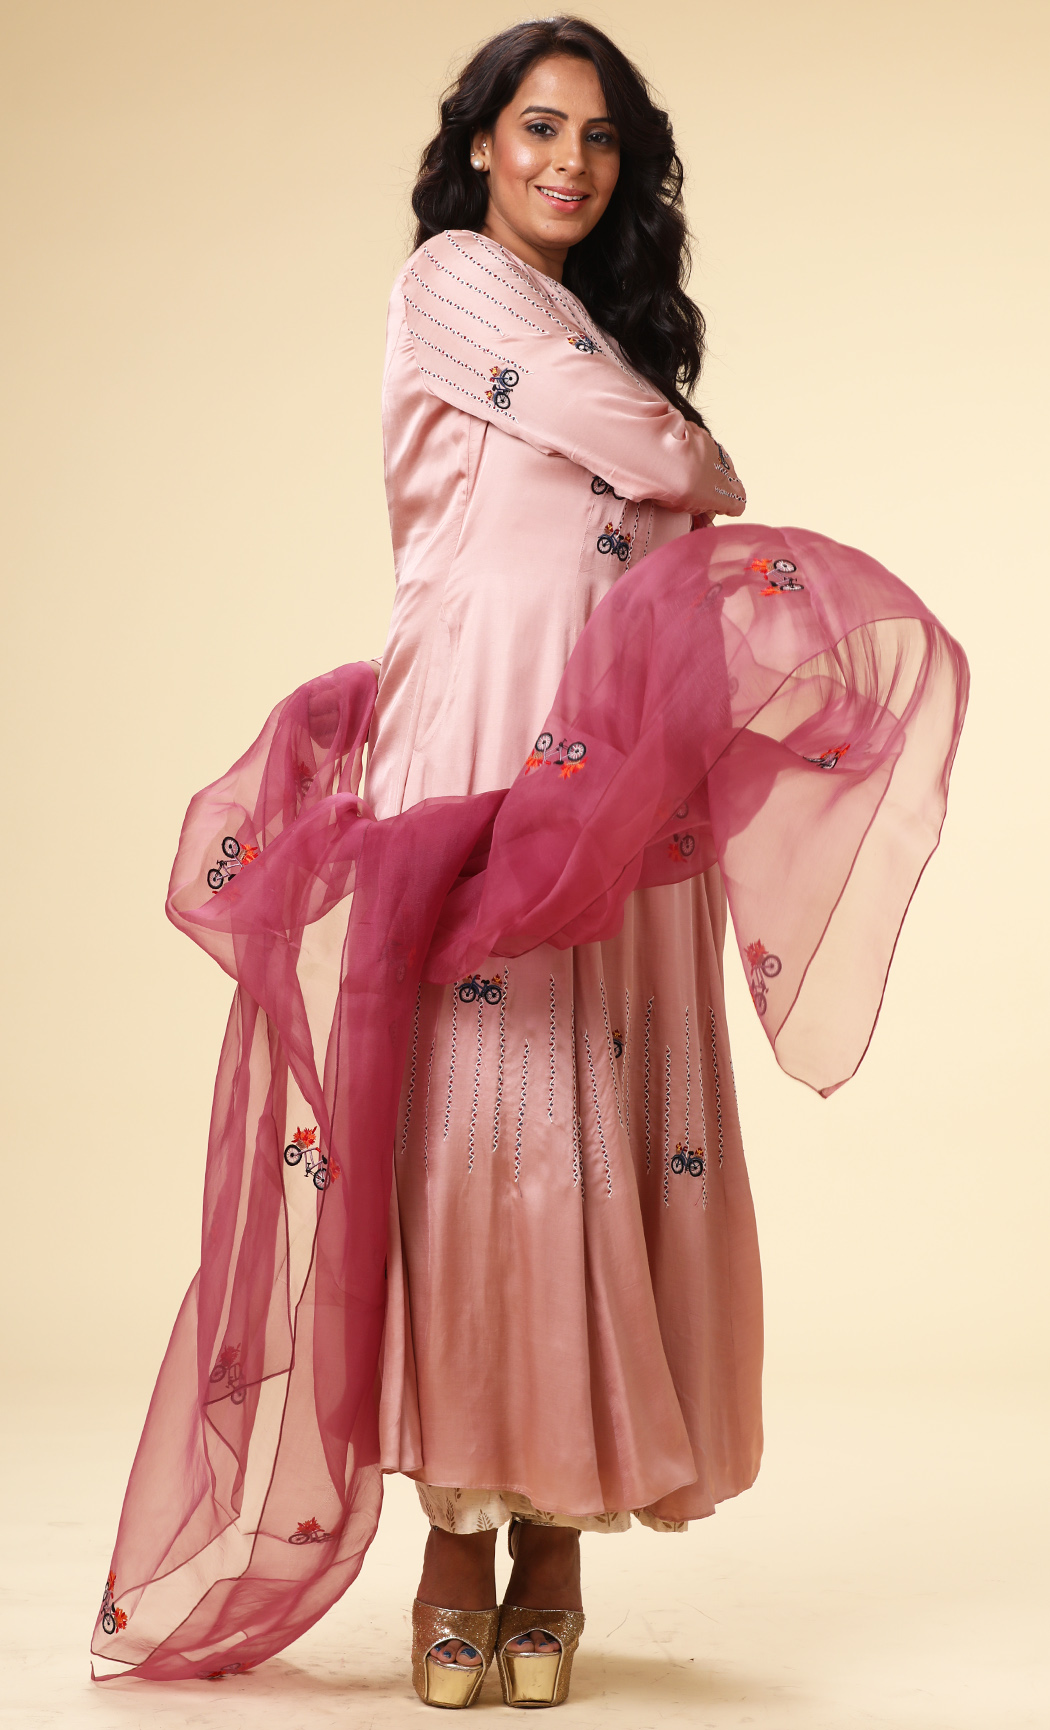 Blush PInk A-Line Kurta with a Purple Dupatta and Pants - Buy Online